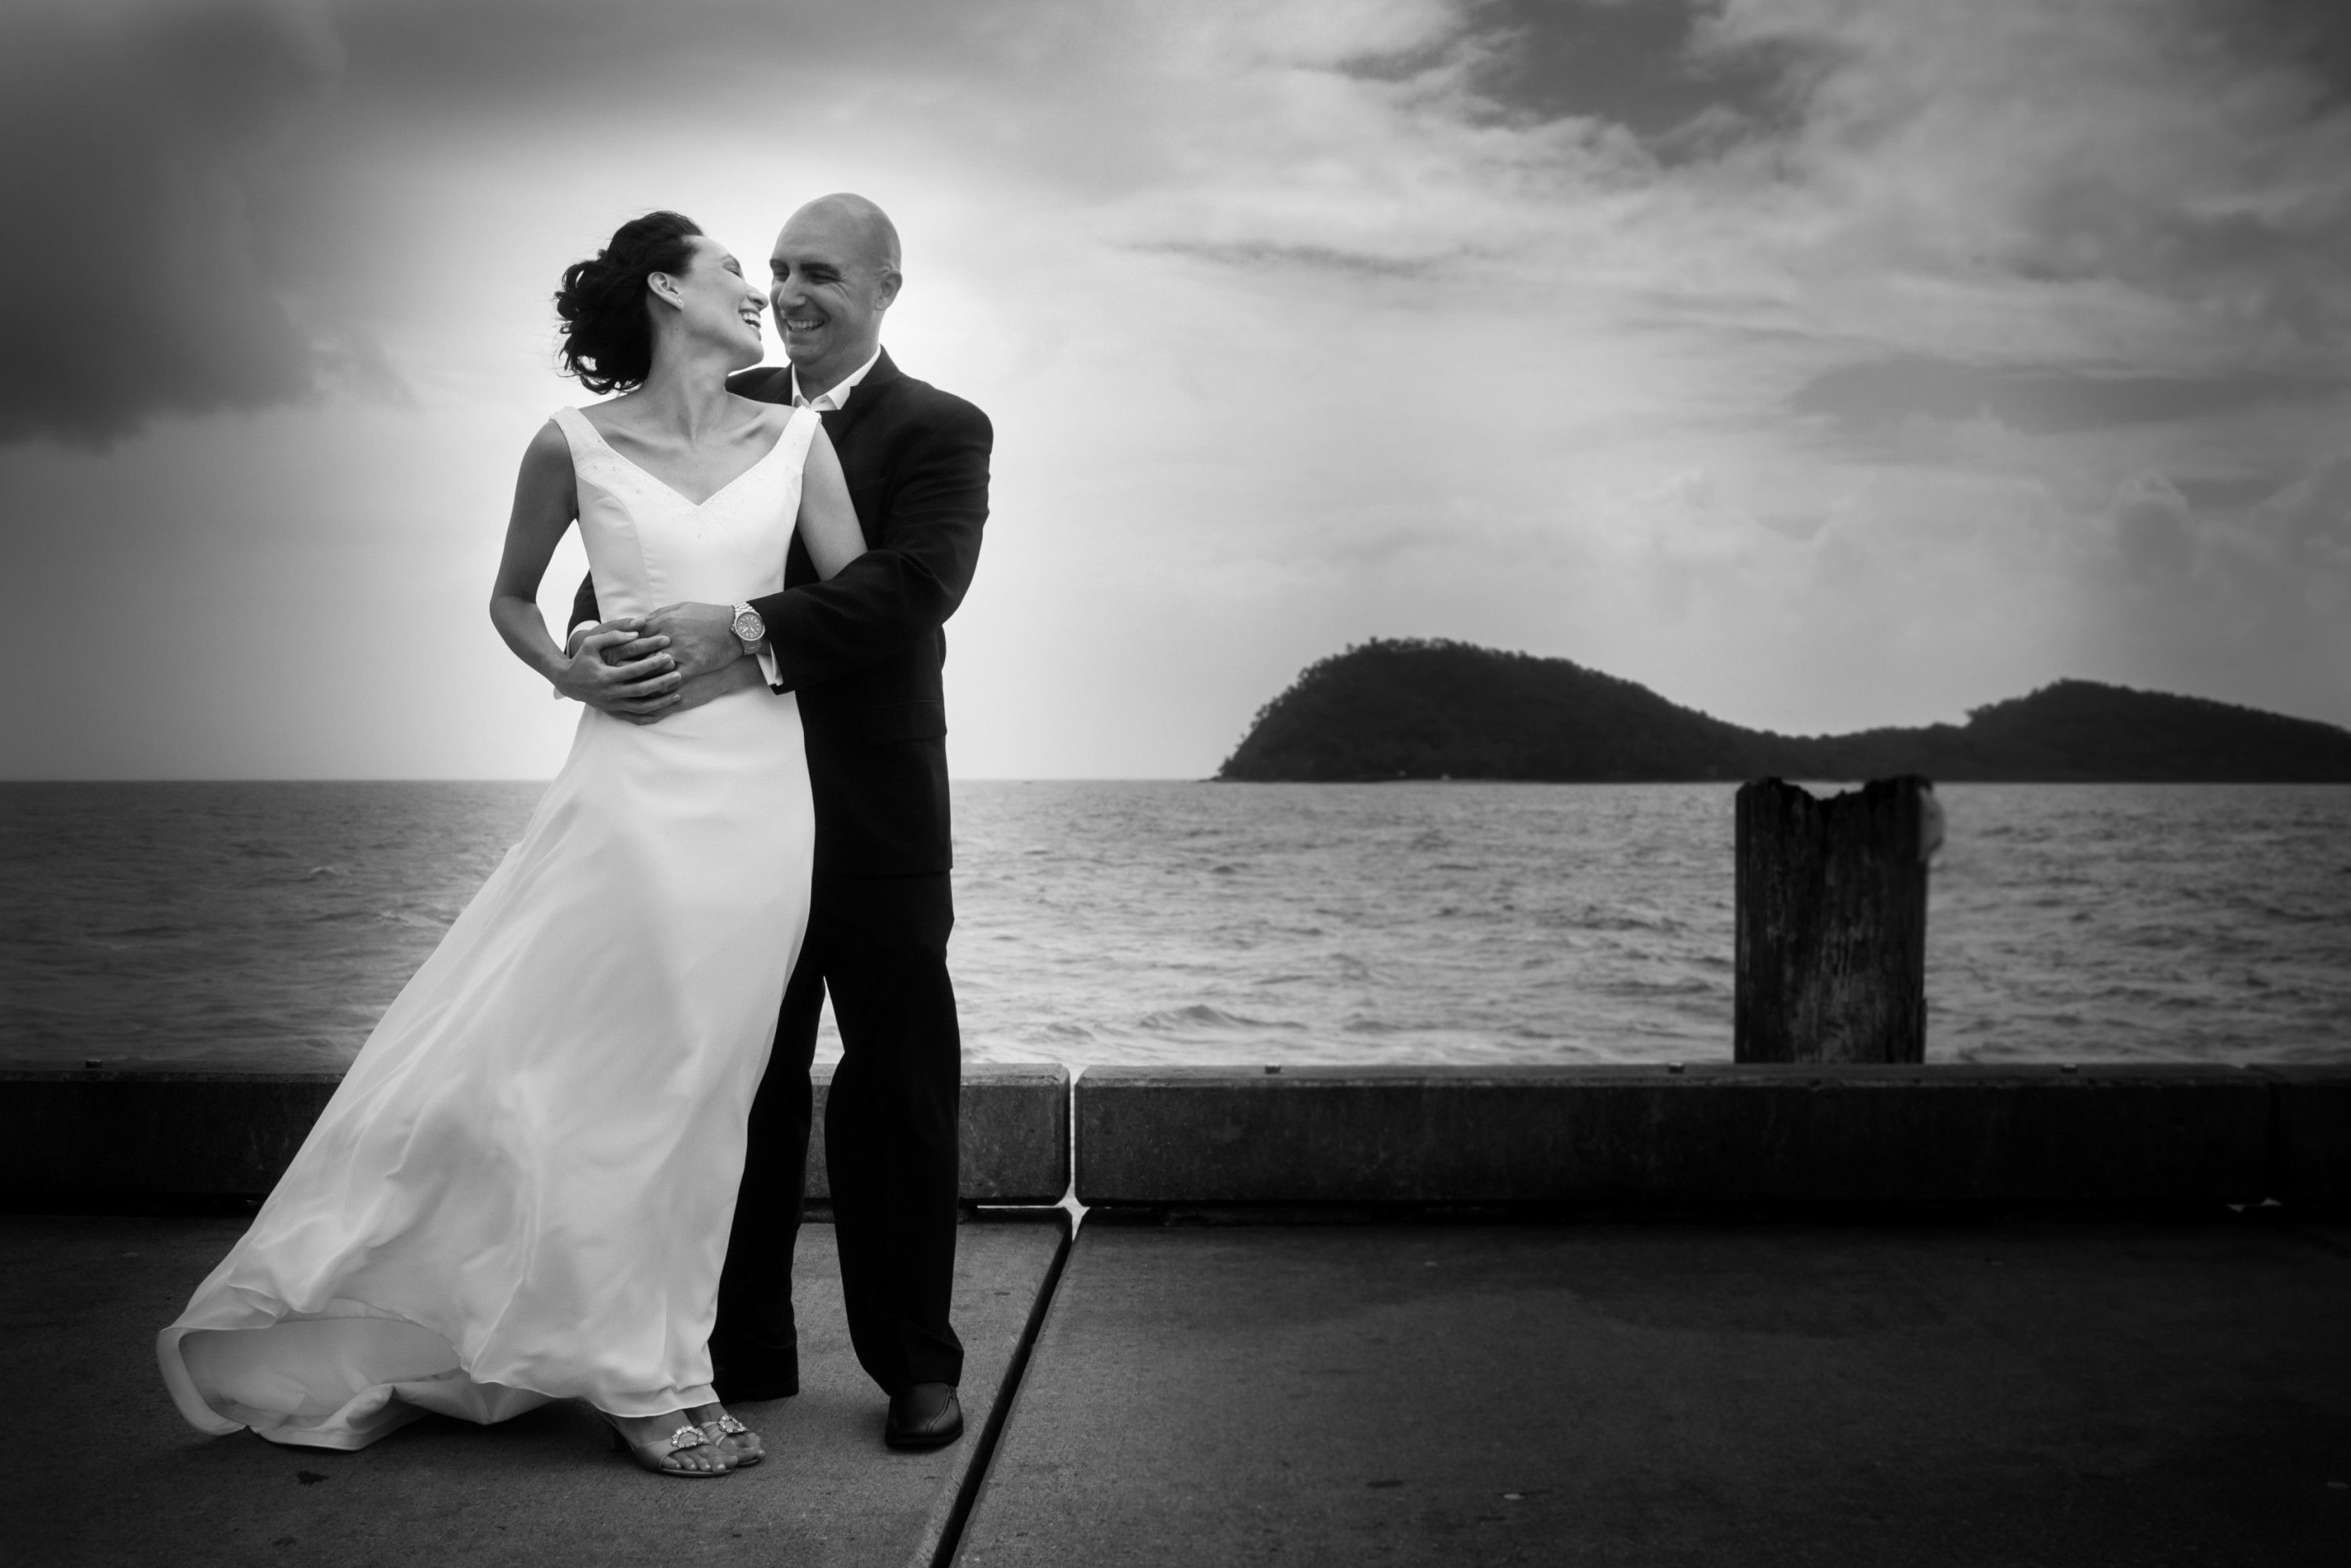 Cairns Beaches Photography - Cairns affordable photography Affordable photography in Cairns